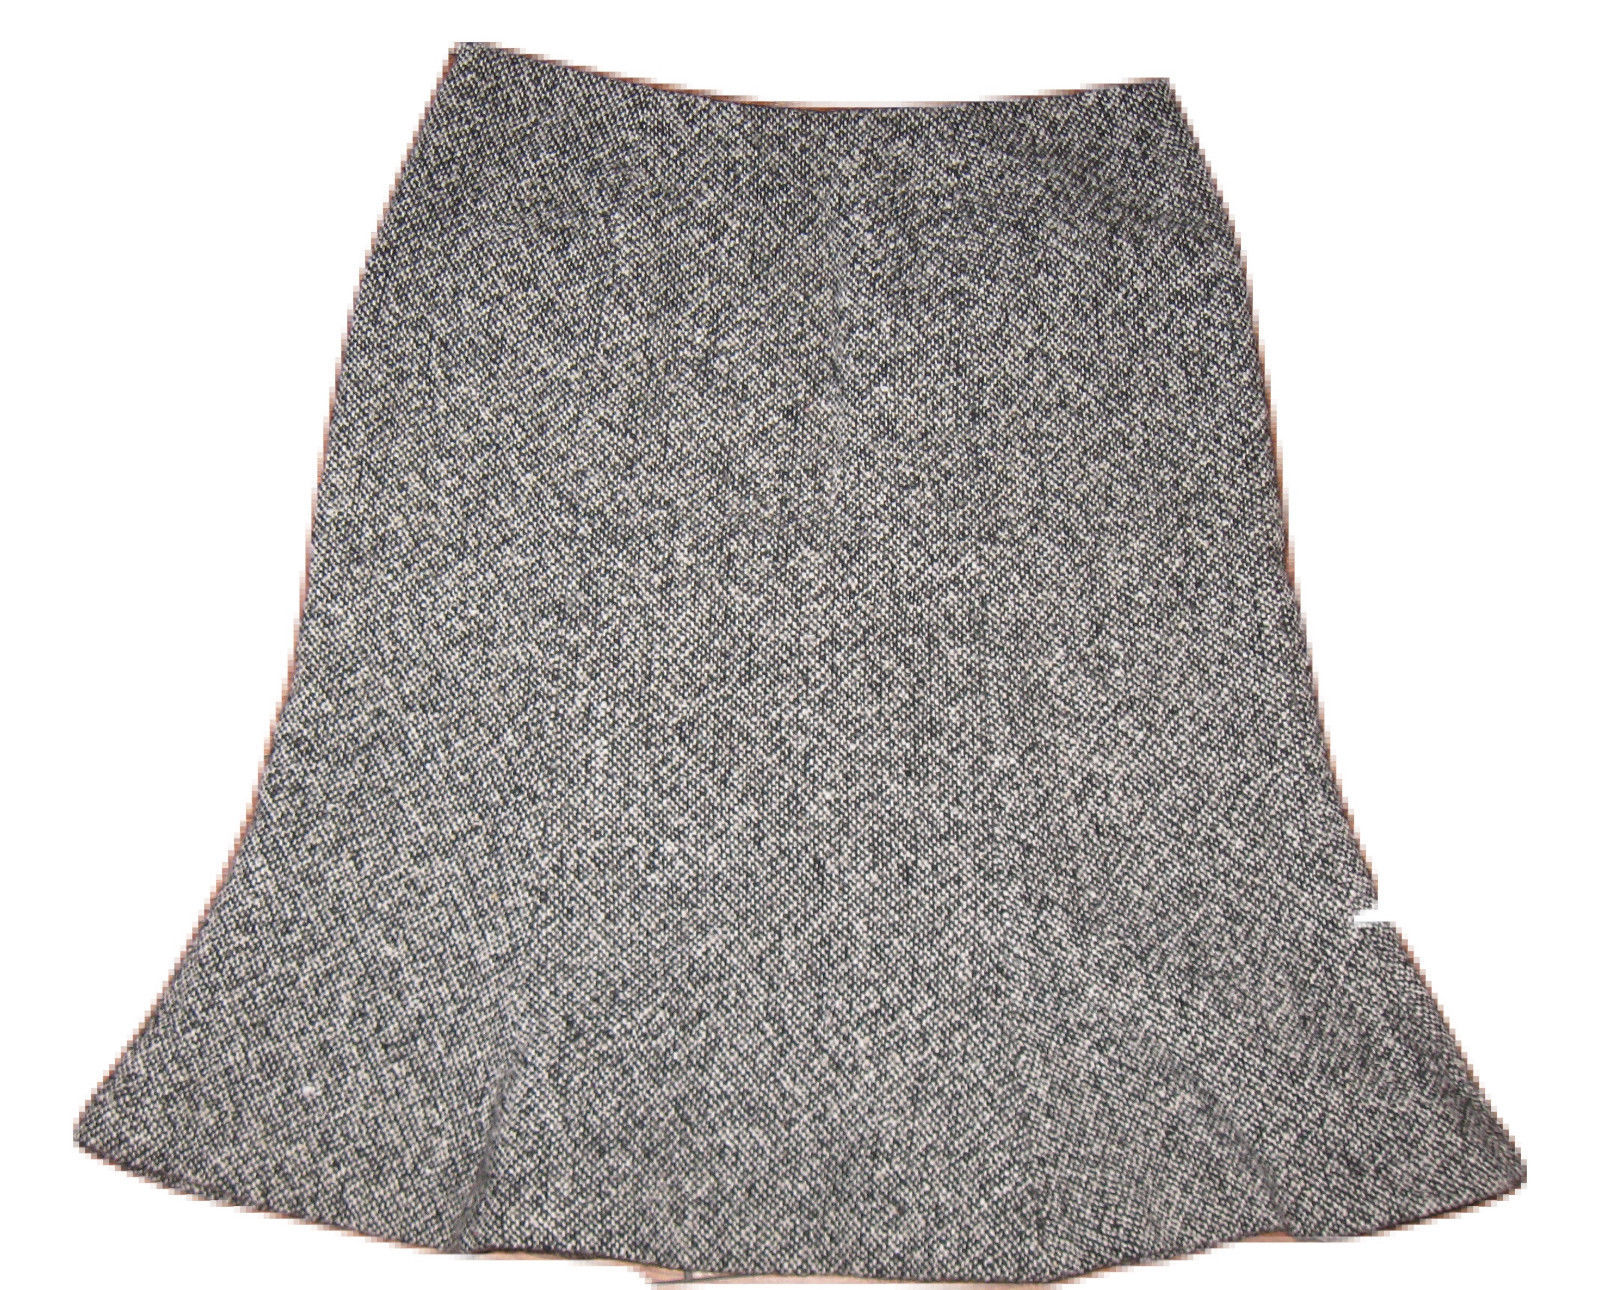 cb7e4e0d5 GAP Sz 1 Skirt Black White TWEED A-Line Flare WOOL Blend Career Work Lined  - $17.99